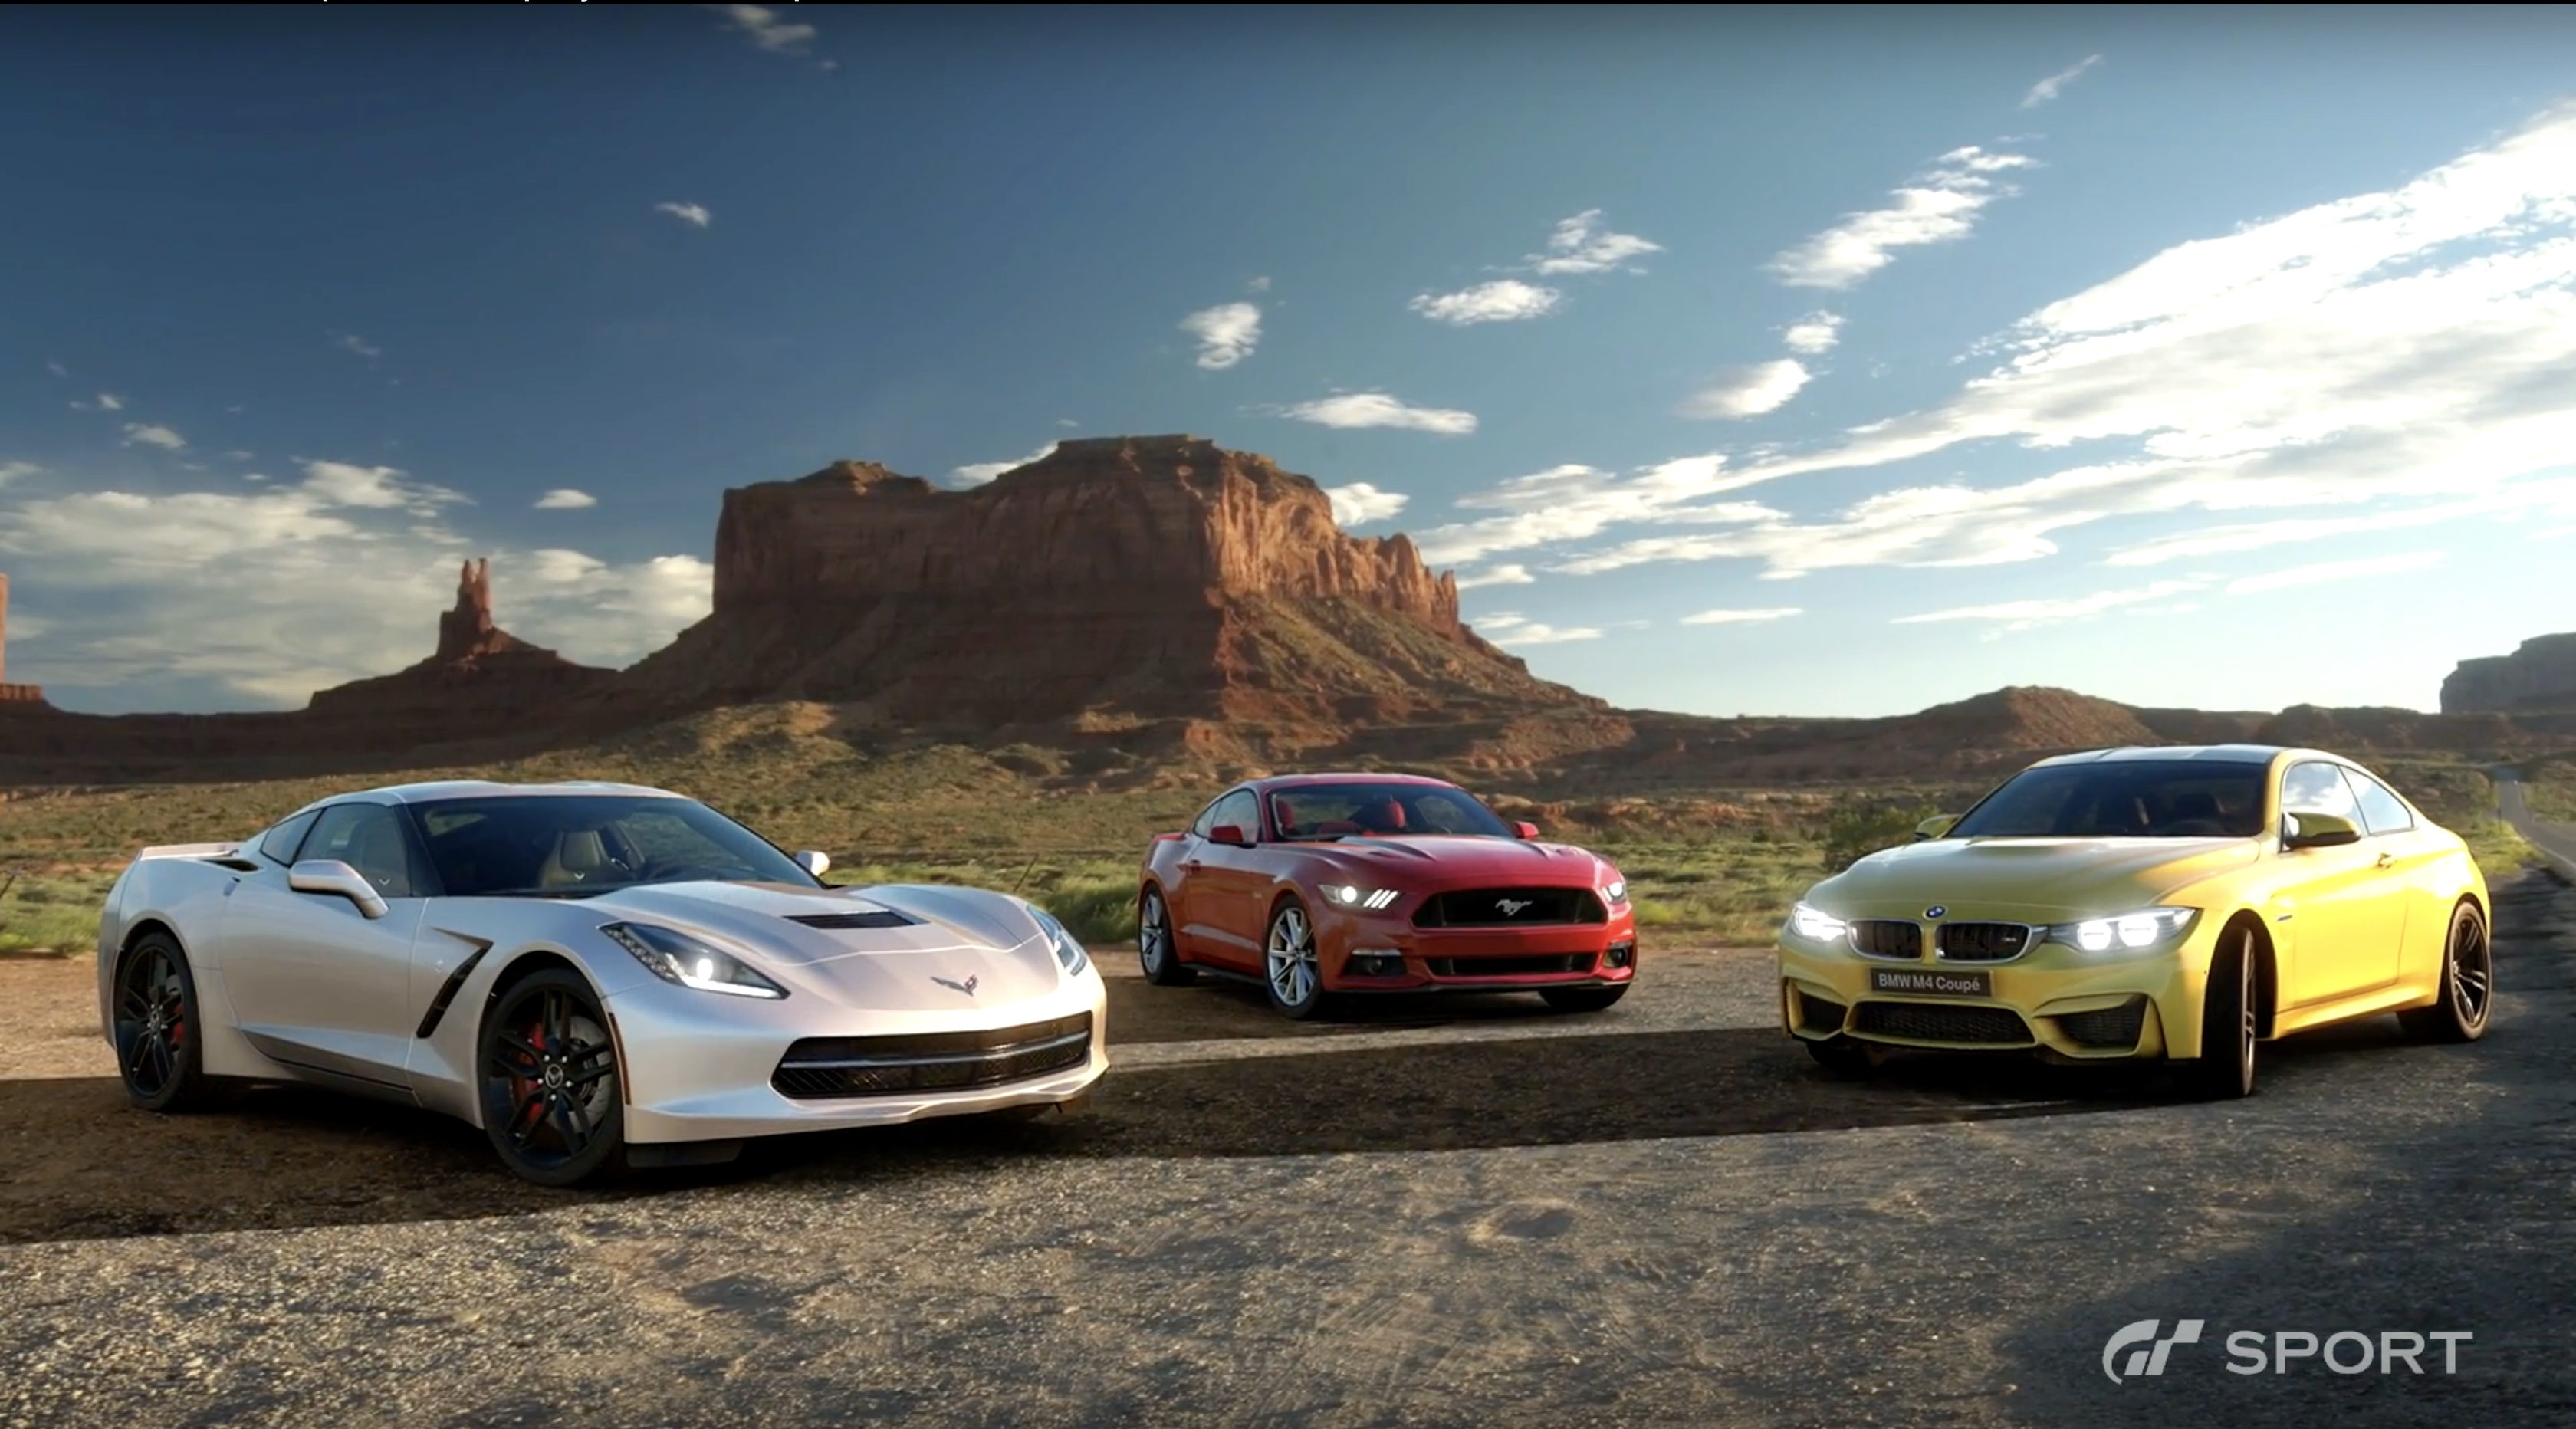 539 Gran Turismo HD Wallpapers Background Images 3360x1864